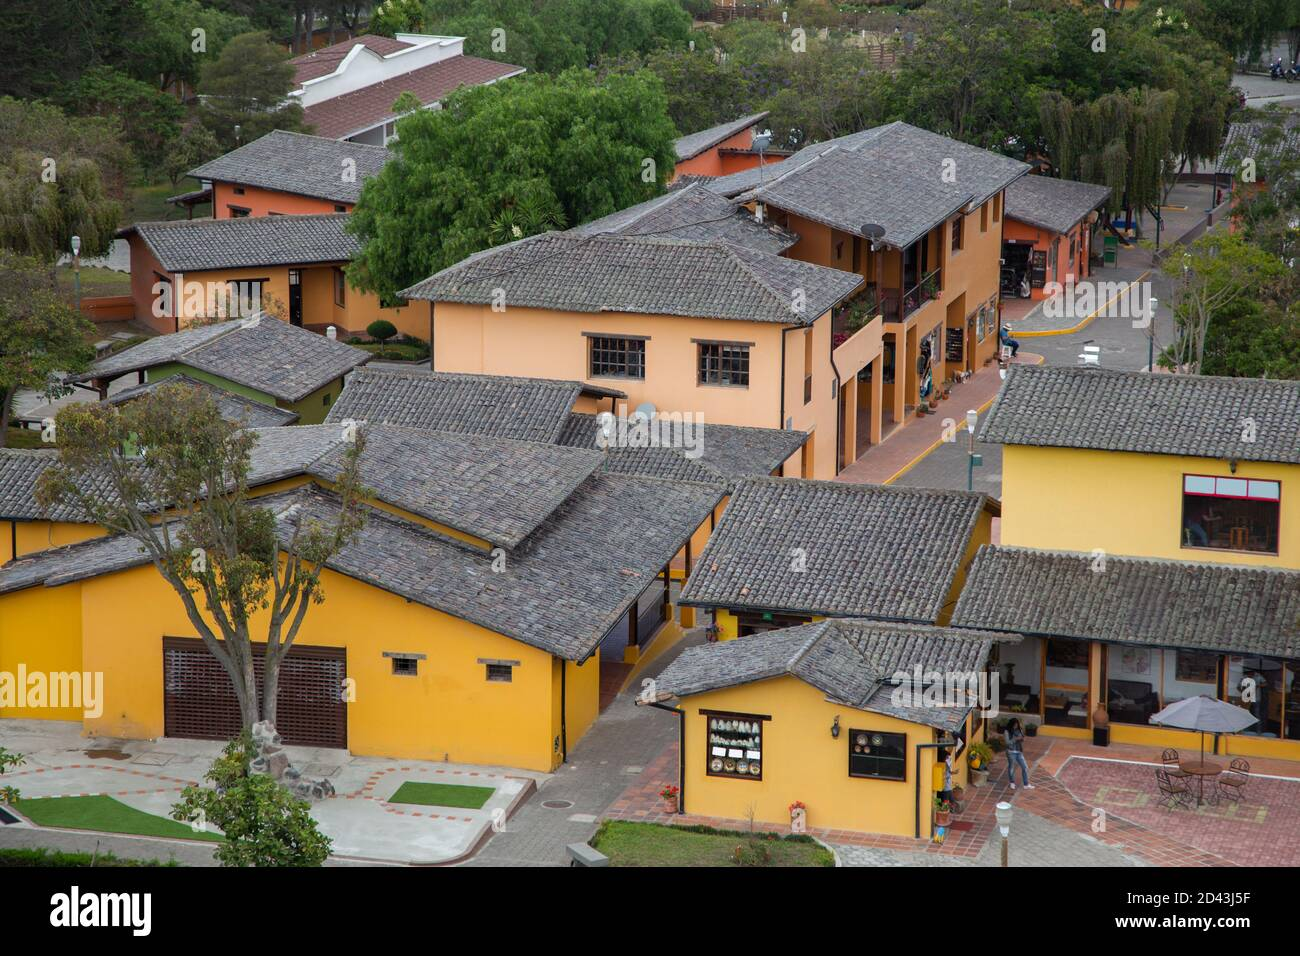 Black Tile Roof Village House High Resolution Stock Photography And Images Alamy